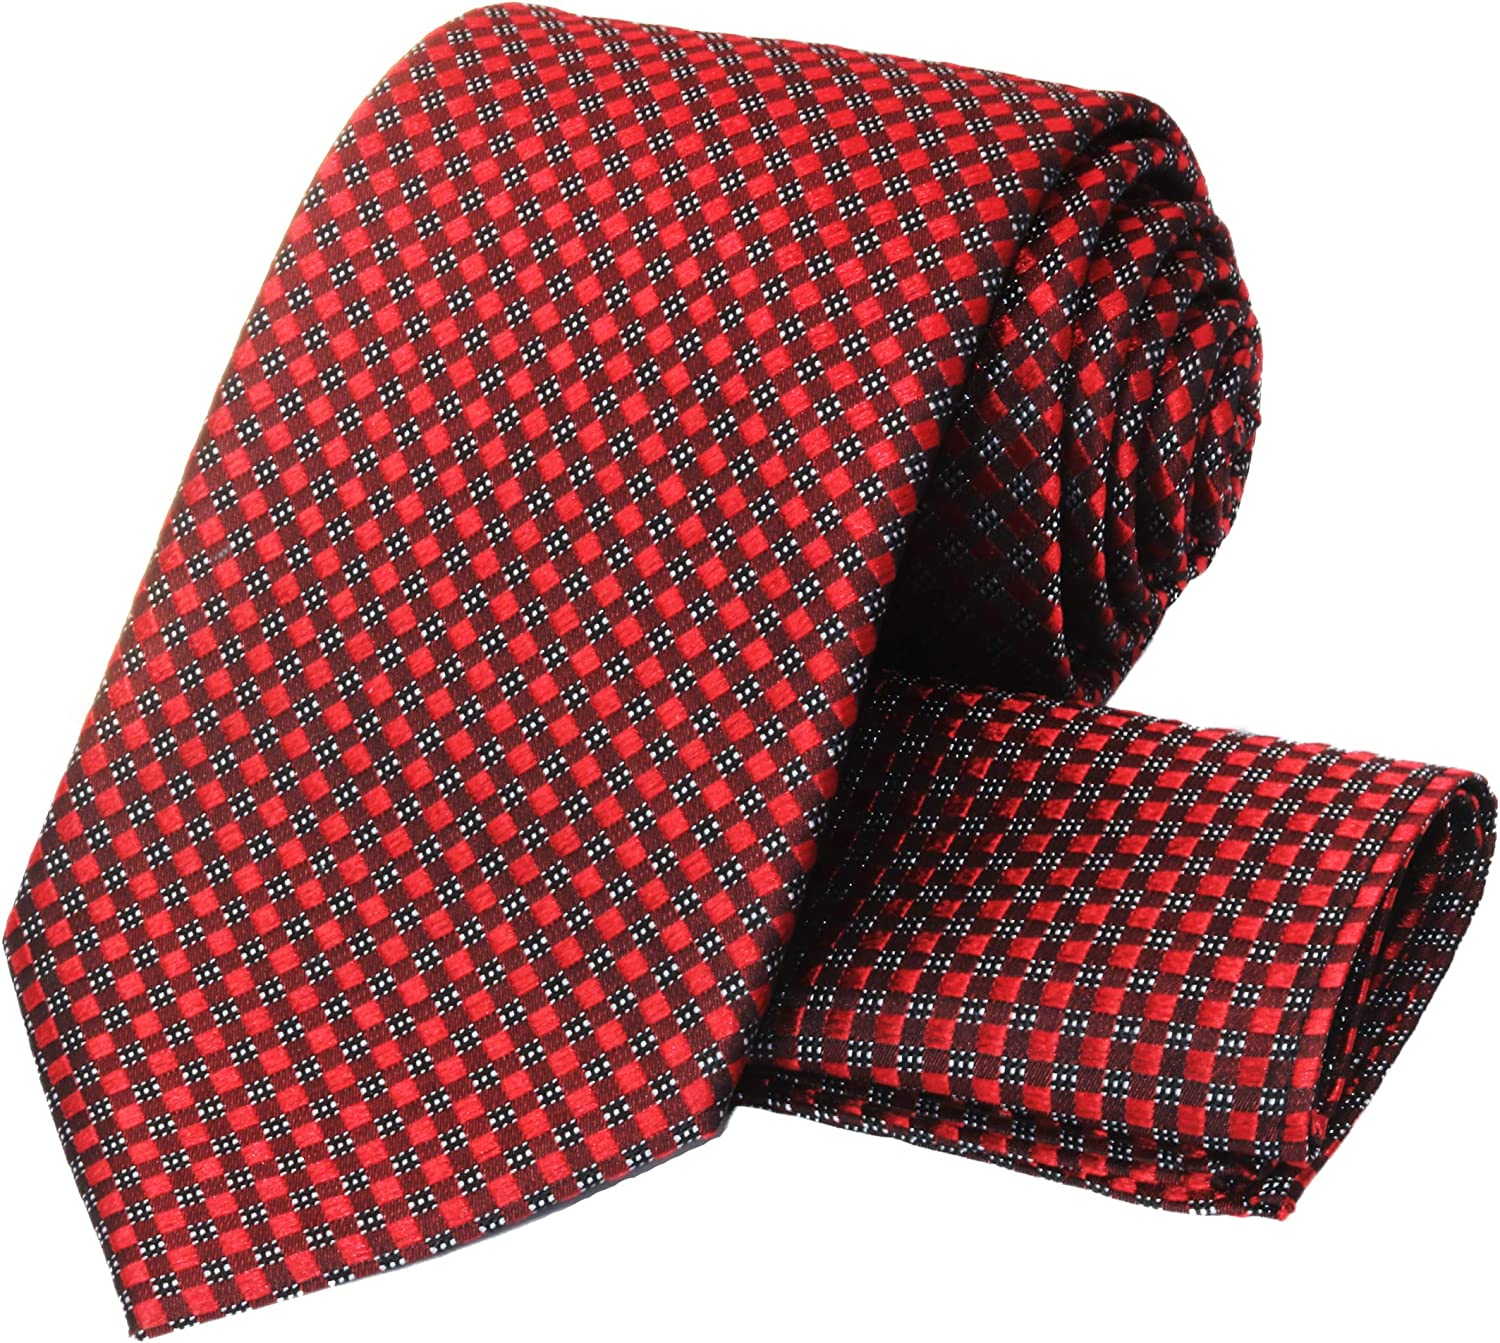 100% Silk Ties Necktie Set for Squar Pocket Tie Free Shipping New and Handmade Fixed price sale Men